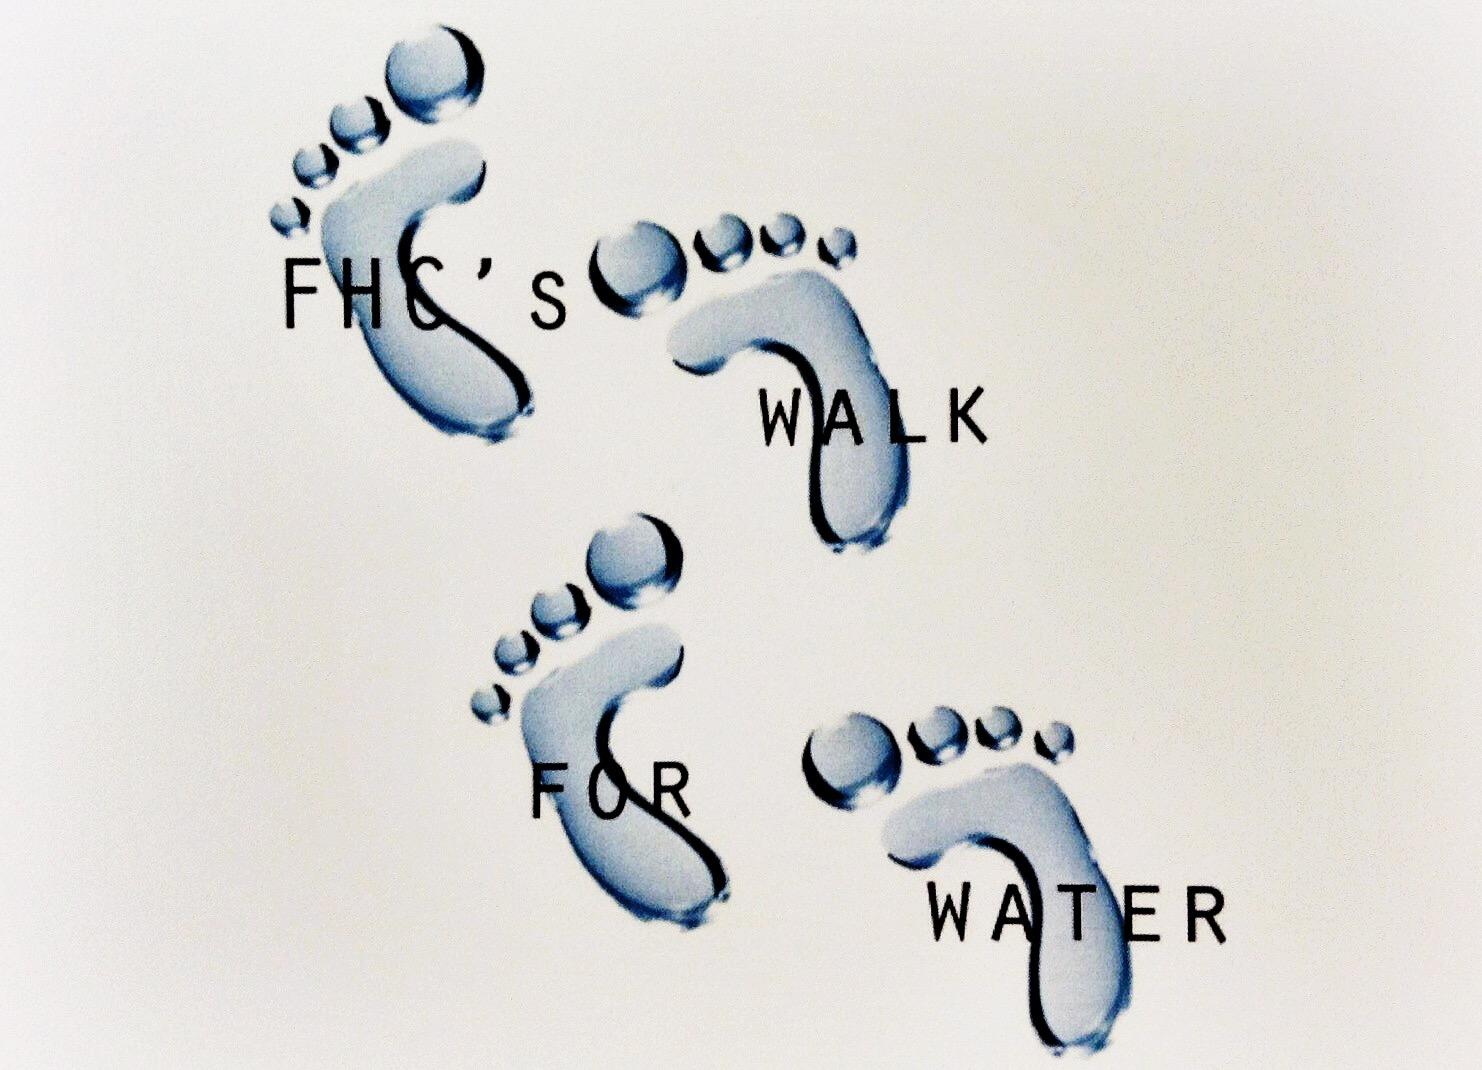 FHC's Walk for Water: Coming together for the Greater Good